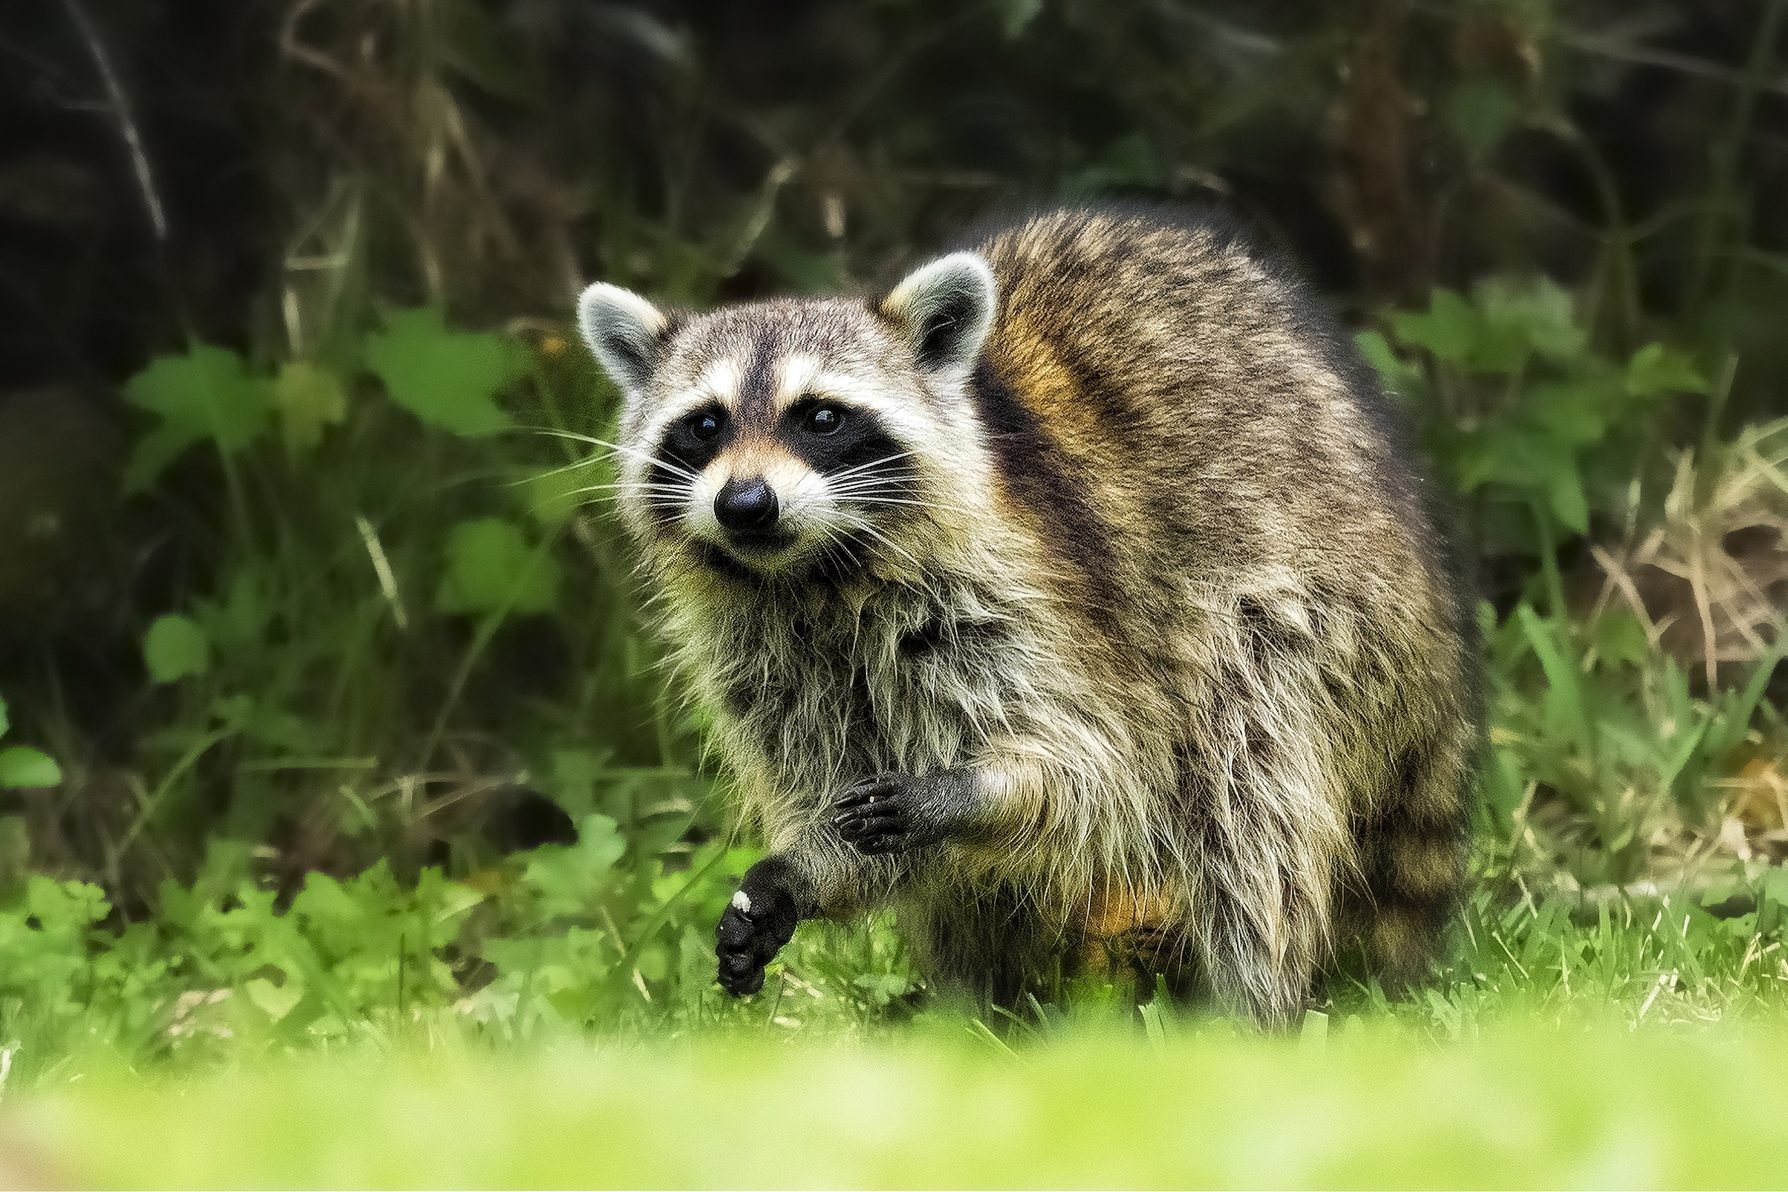 An urban raccoon recons backyards in preparation for the night's raid.